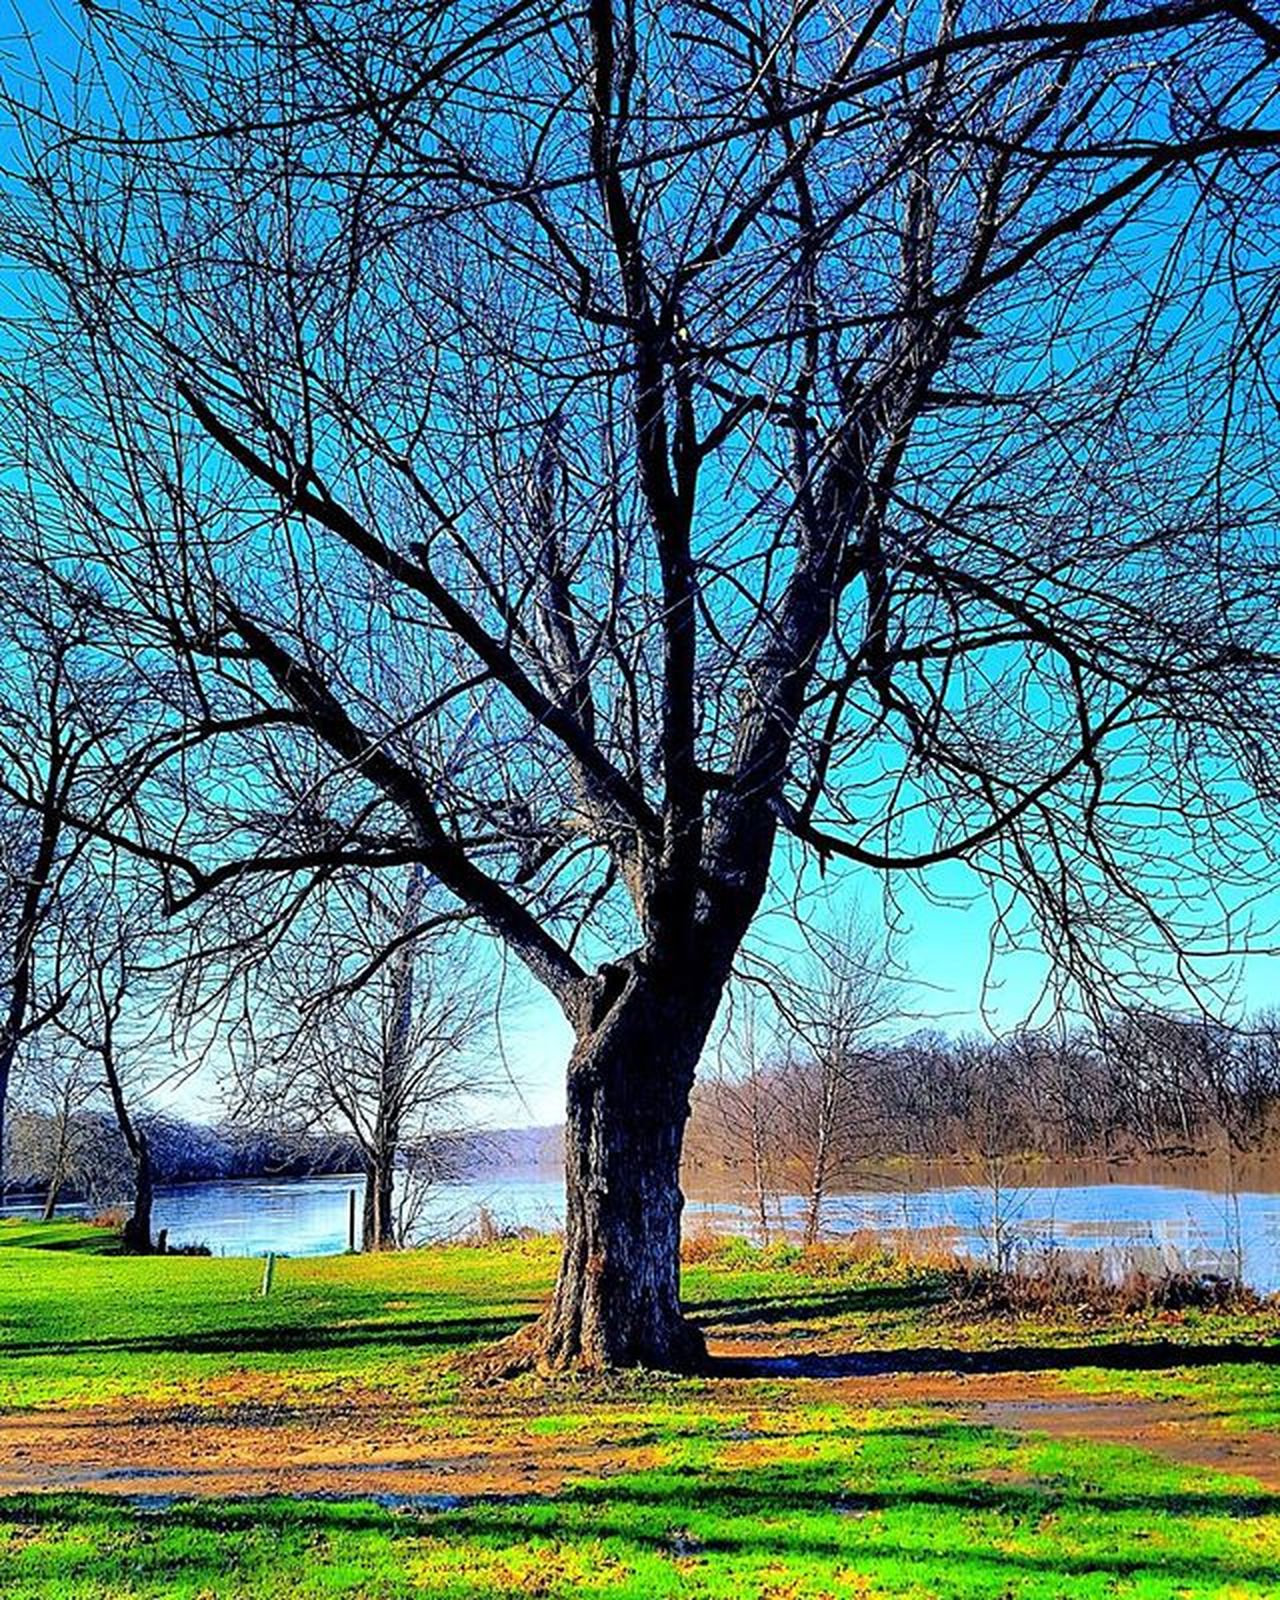 Naturephotography Naturelover Nature Landscape Landscapephotography Treelovers Tree Branches Photographylovers Photography Samsungphotography Samsungphoto Samsung Igmasters Igbest Pictureoftheday Picoftheday Brightcolors Bestoftheday Igworldclub IGDaily Bestofinstagram Bestoftheday Lakeview Lake lakeside path aneyeforaphoto 2016